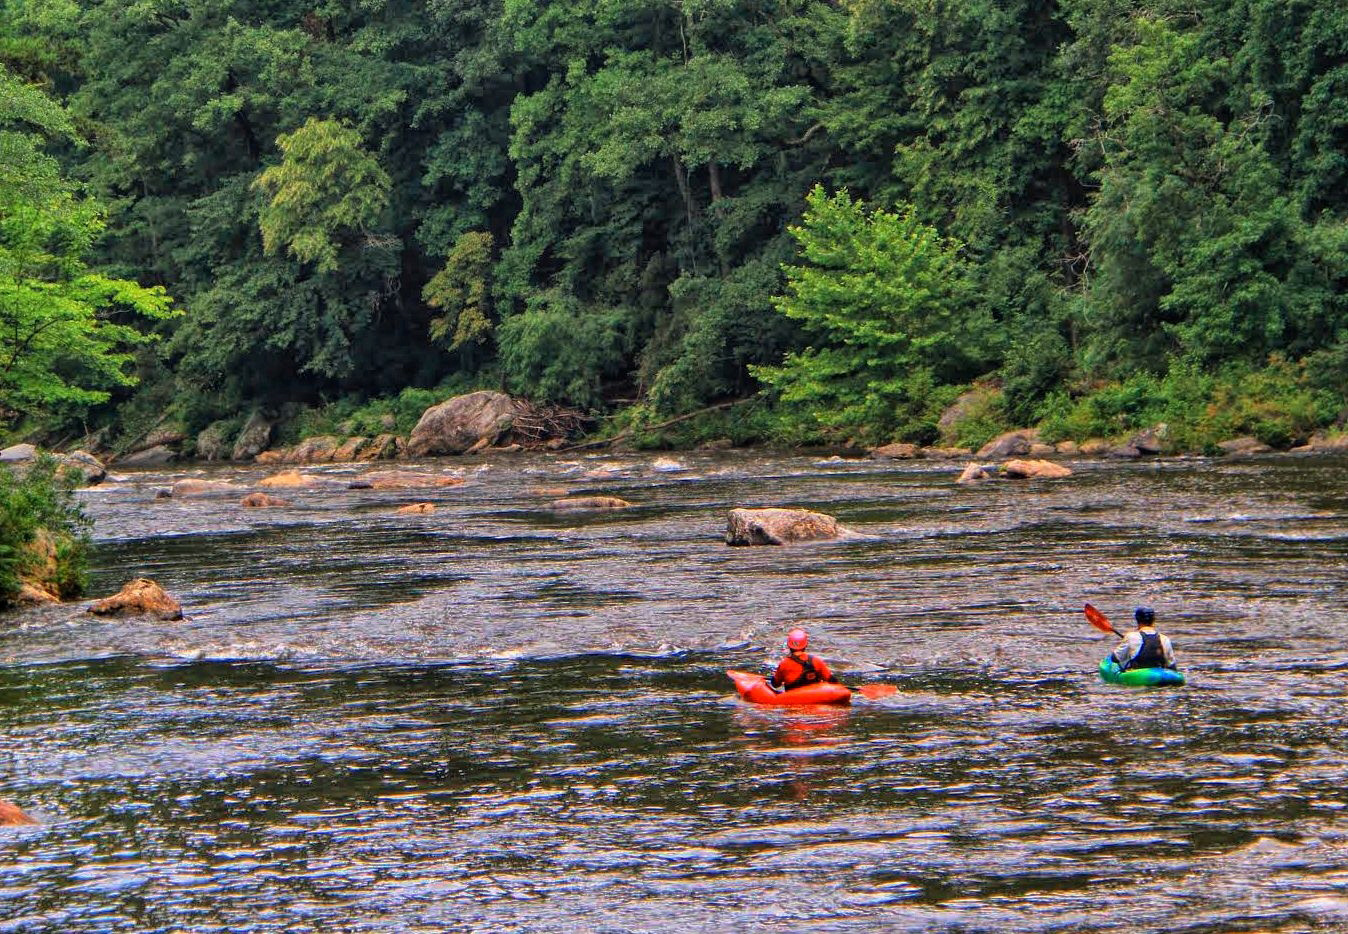 Chattooga River. Photo courtesy Southeastern Expeditions